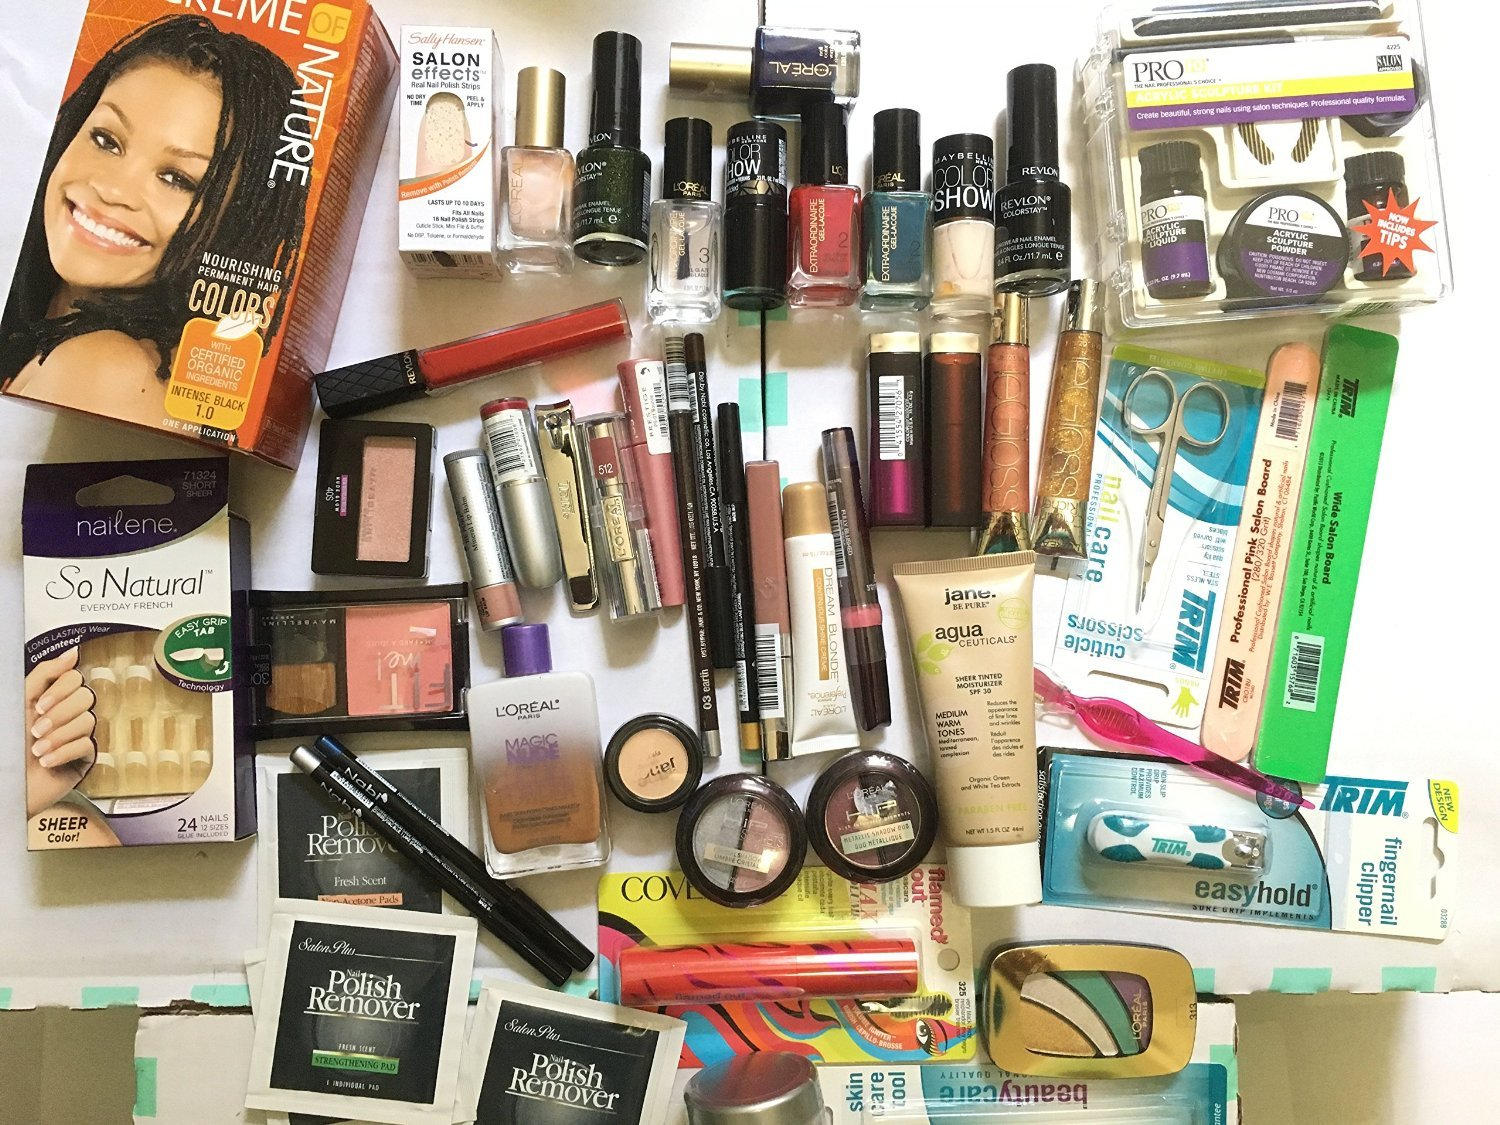 100 Pc Wholesale Makeup Revlon,l'oreal,maybelline,prestige,nyc,jane,kiss, Nails,karma,trim and Nails Accessories,perfumes,hair Color,trim Accessories and Many Many More